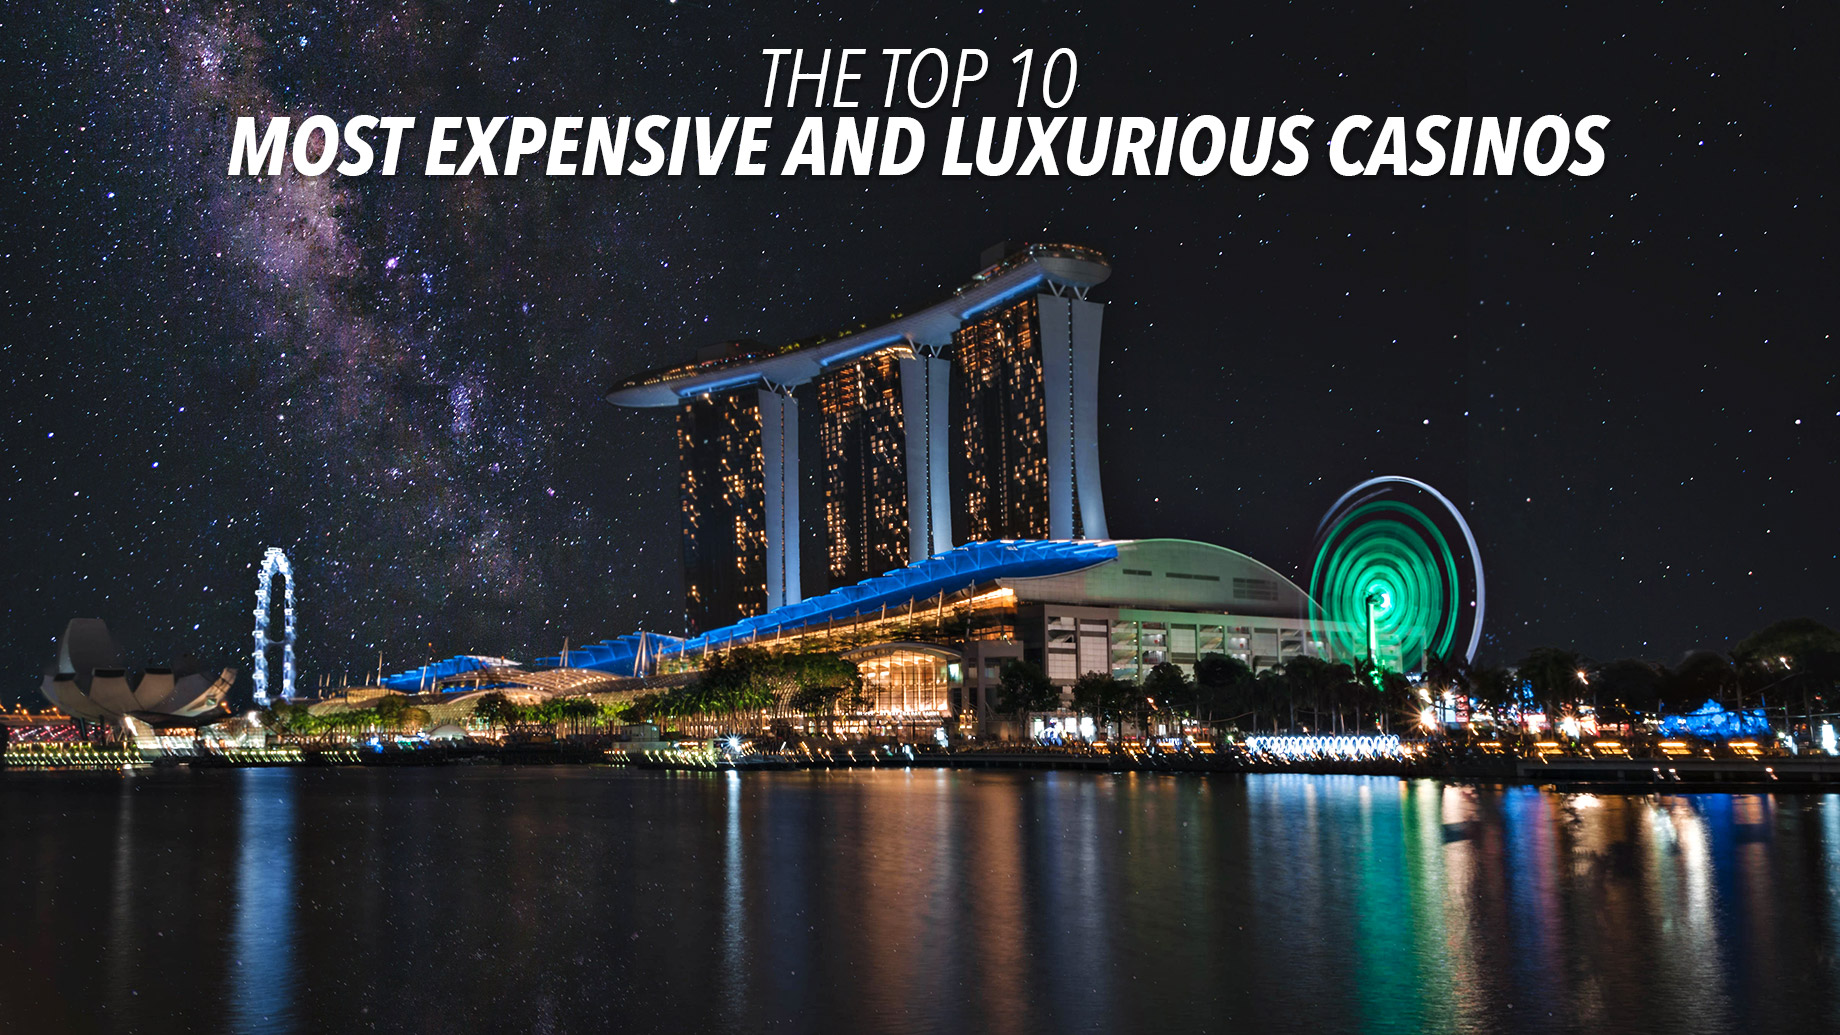 Affluent Lifestyle - The Top 10 Most Expensive And Luxurious Casinos